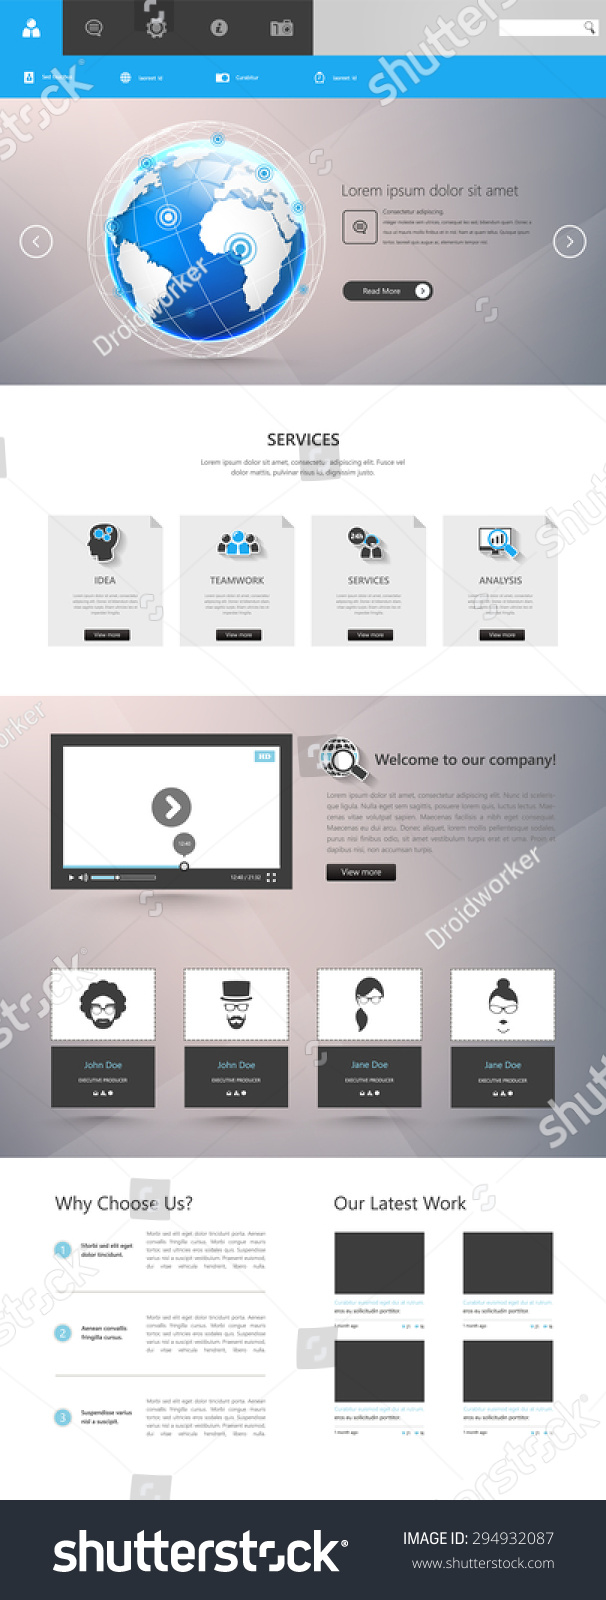 one page website template in flat design | EZ Canvas